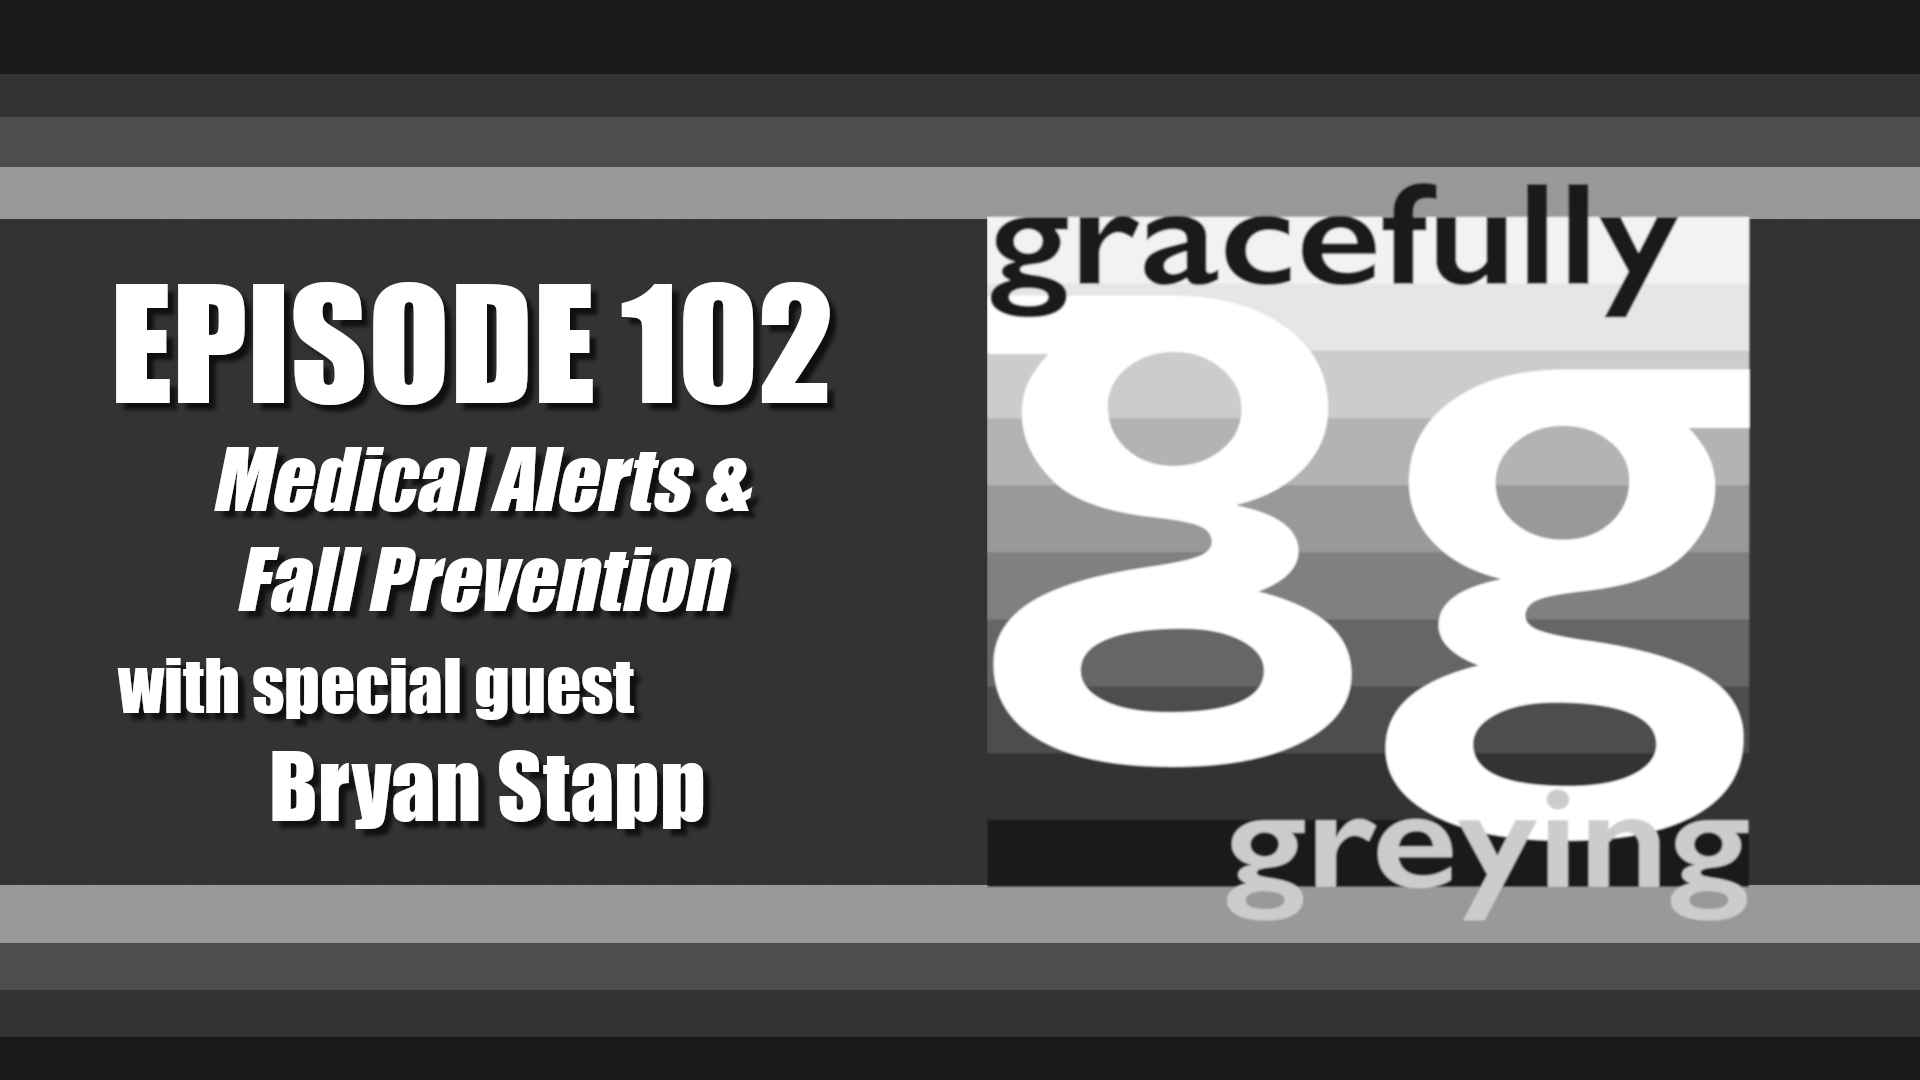 Gracefully Greying - Episode 102 - Medical Alerts